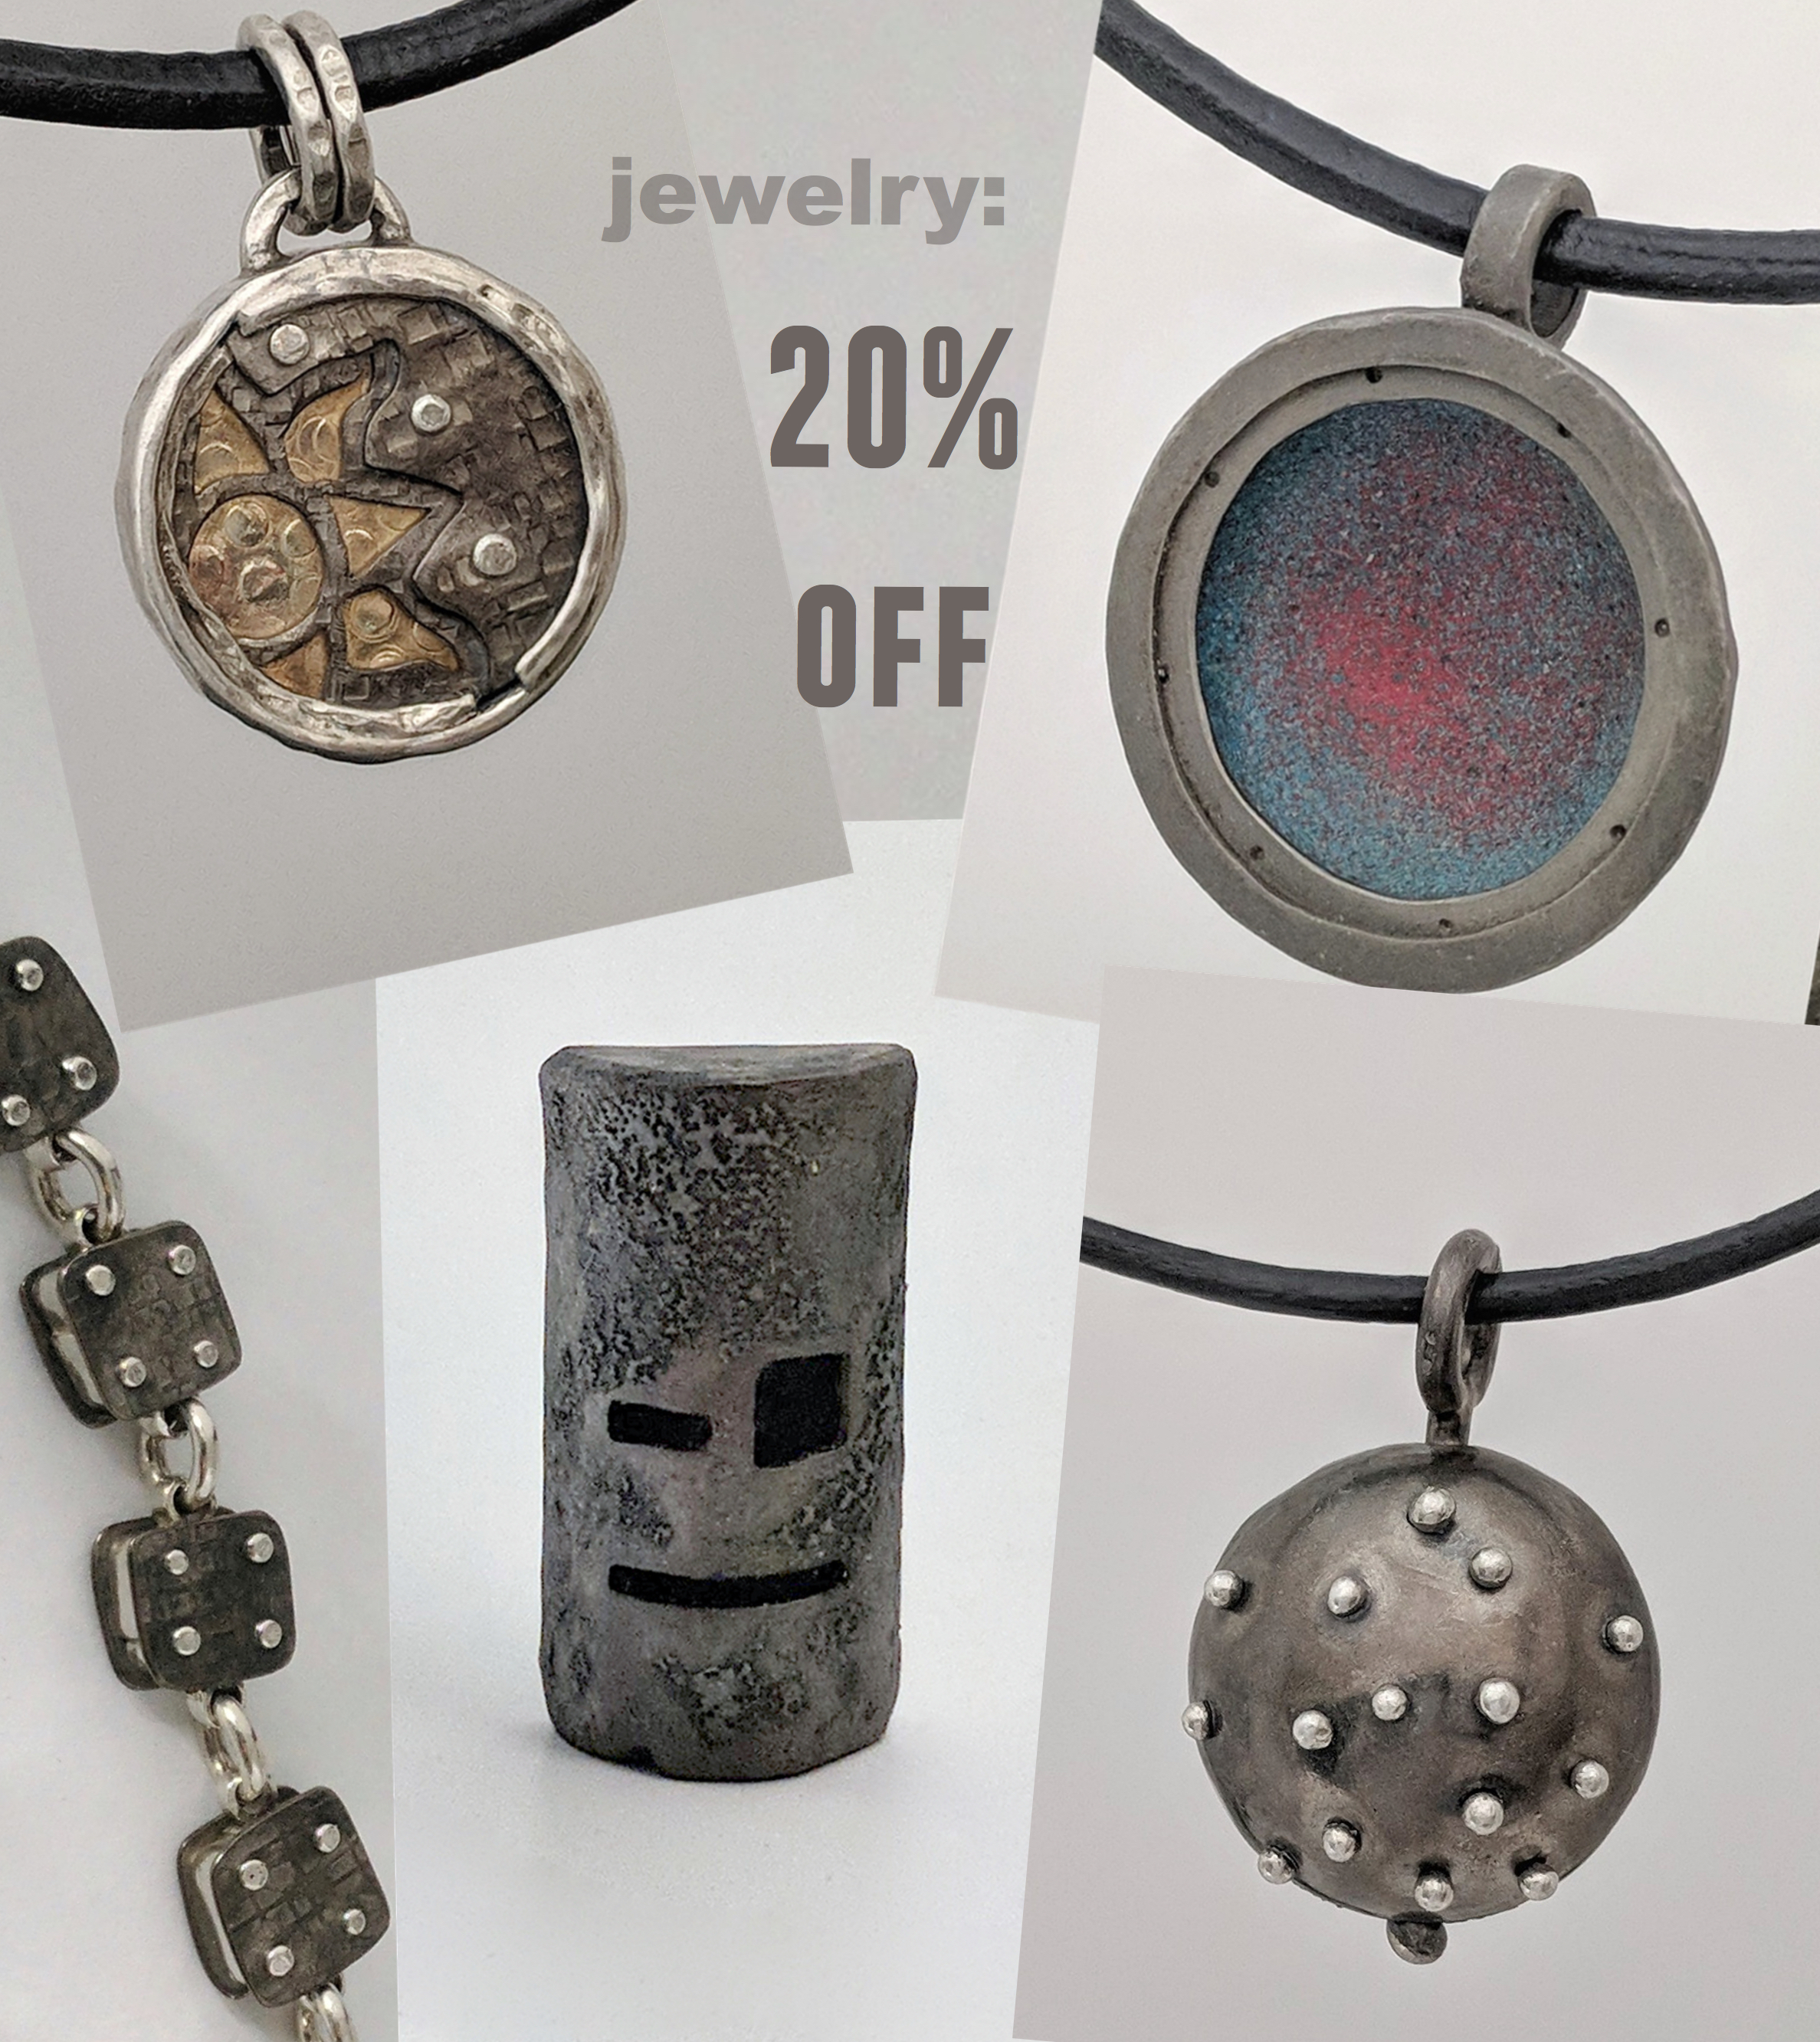 jewelry-group-sale2.jpg